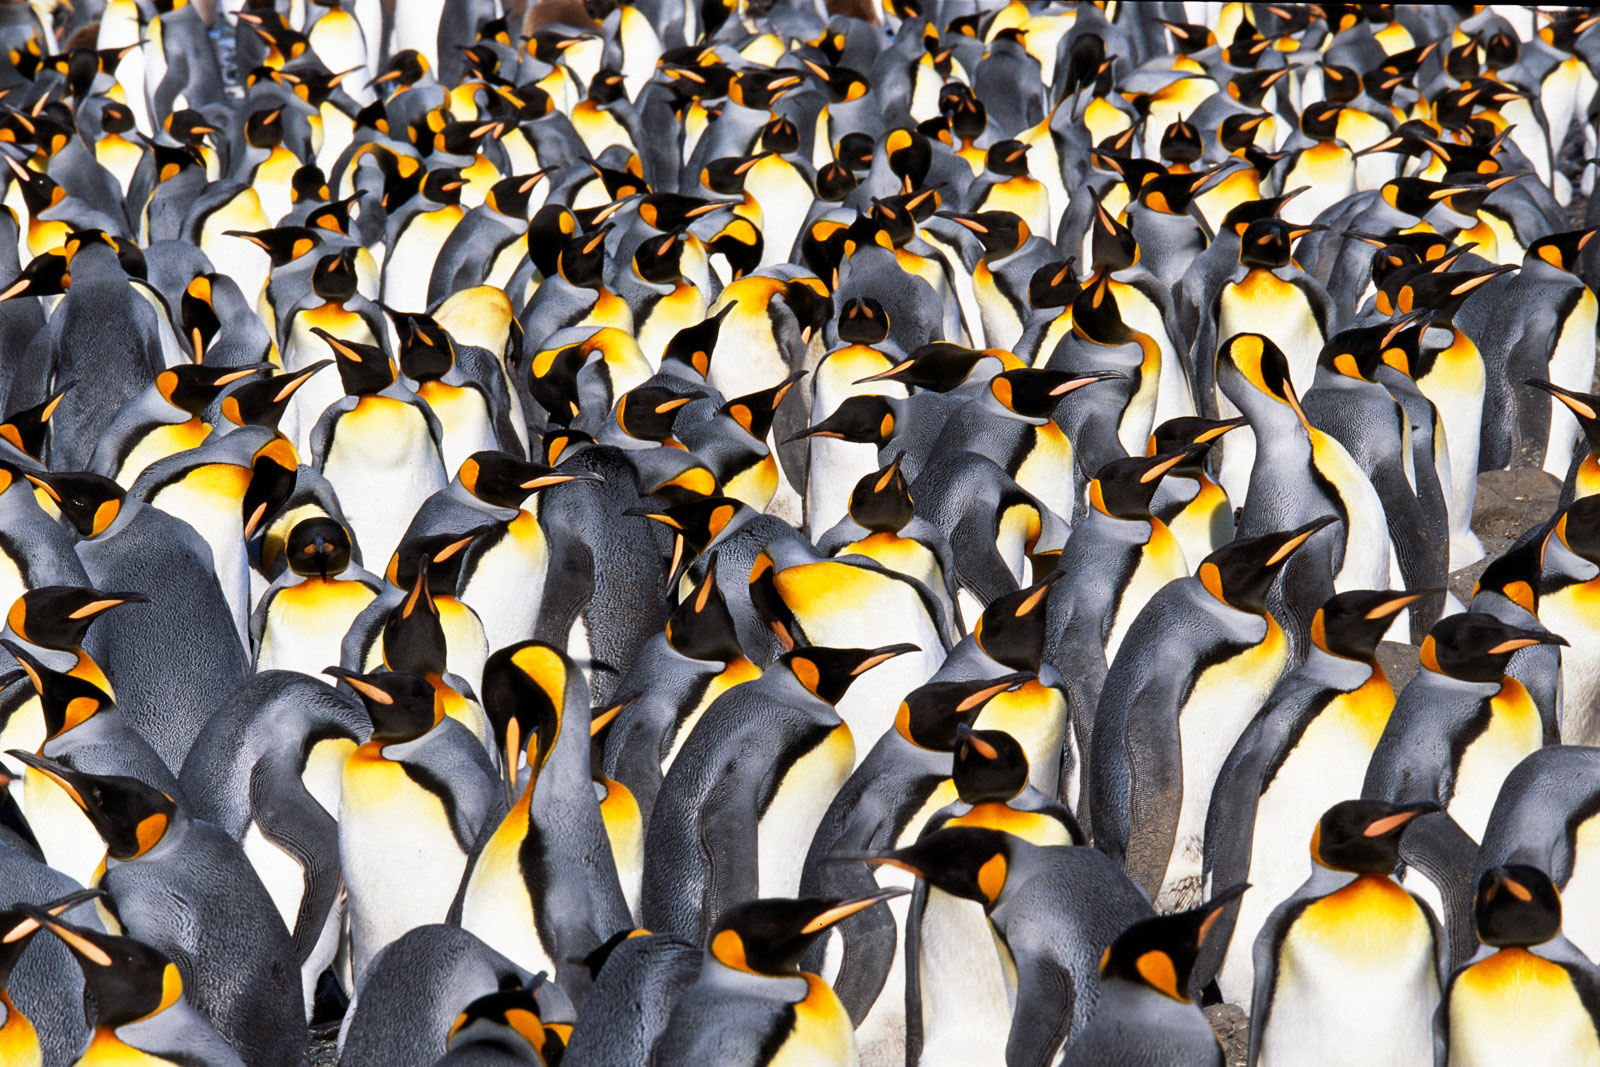 King penguin colony, South Georgia Island